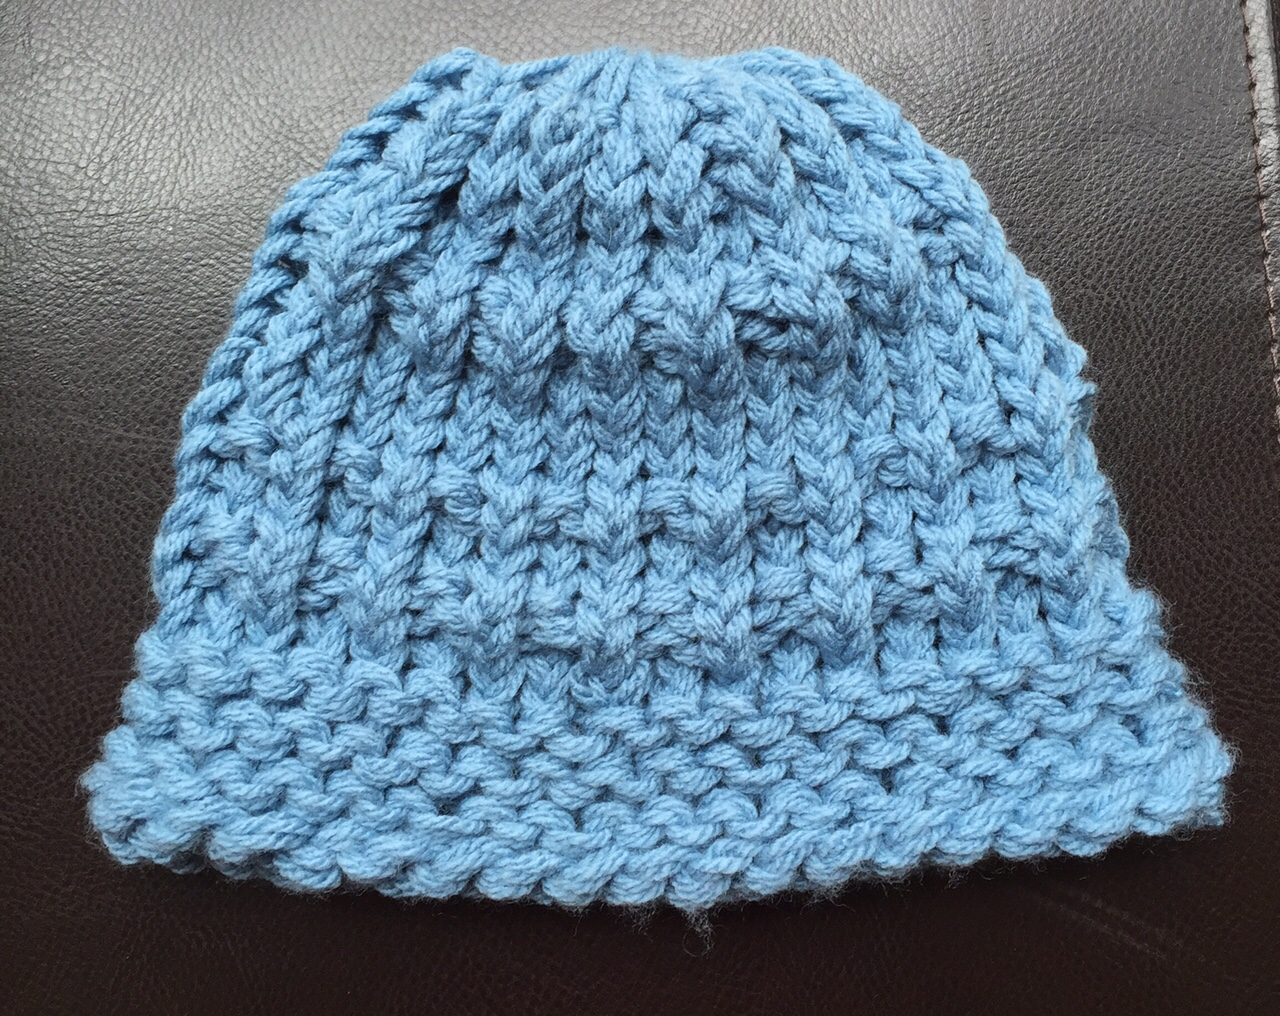 36 Peg Loom Knitting Patterns : Knitting With Looms: Ethans Hat